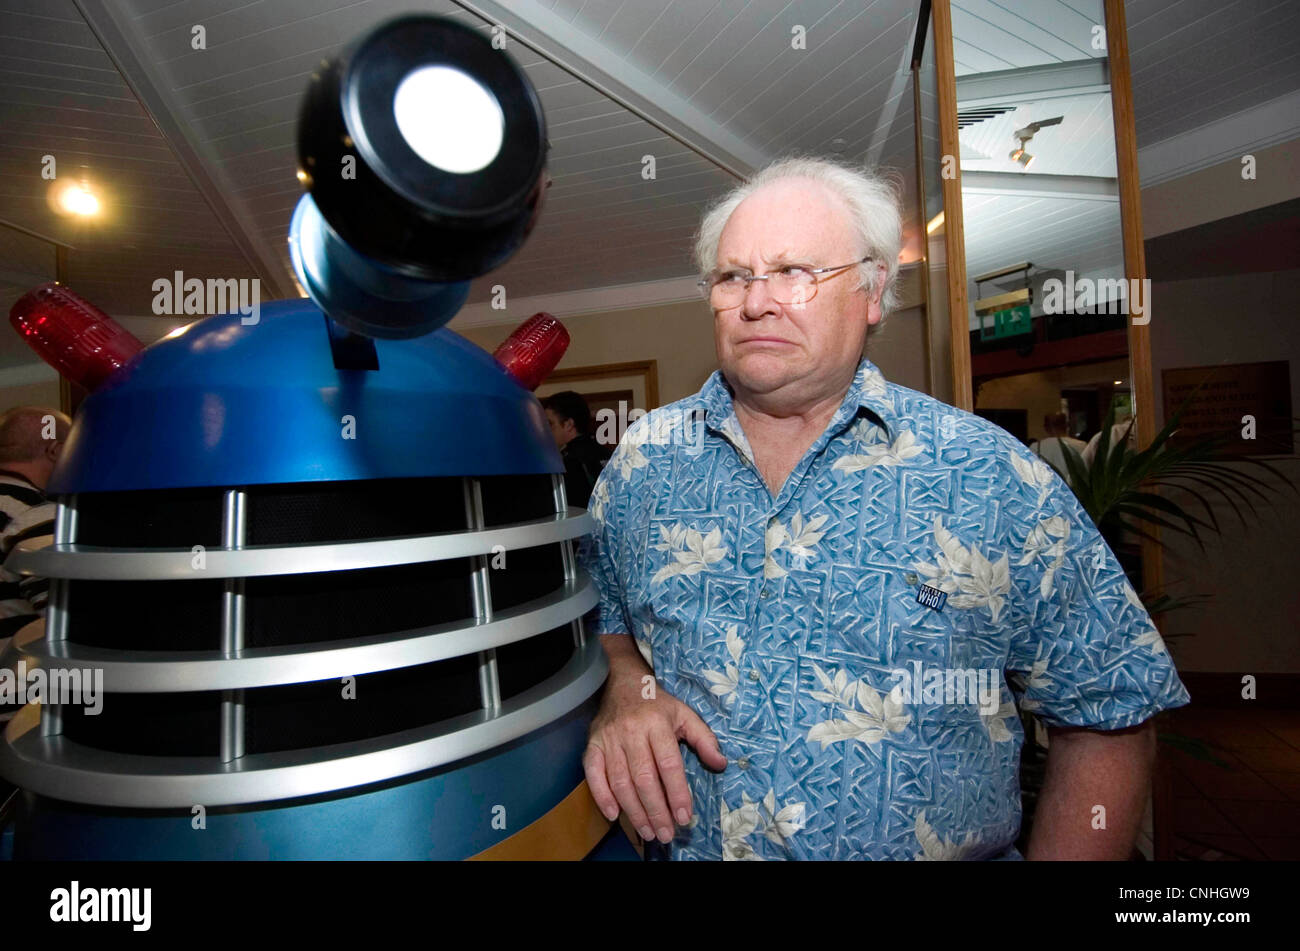 Colin Baker, the actor who played the sixth incarnation of Dr Who is reunited with his old enemy - the daleks. - Stock Image